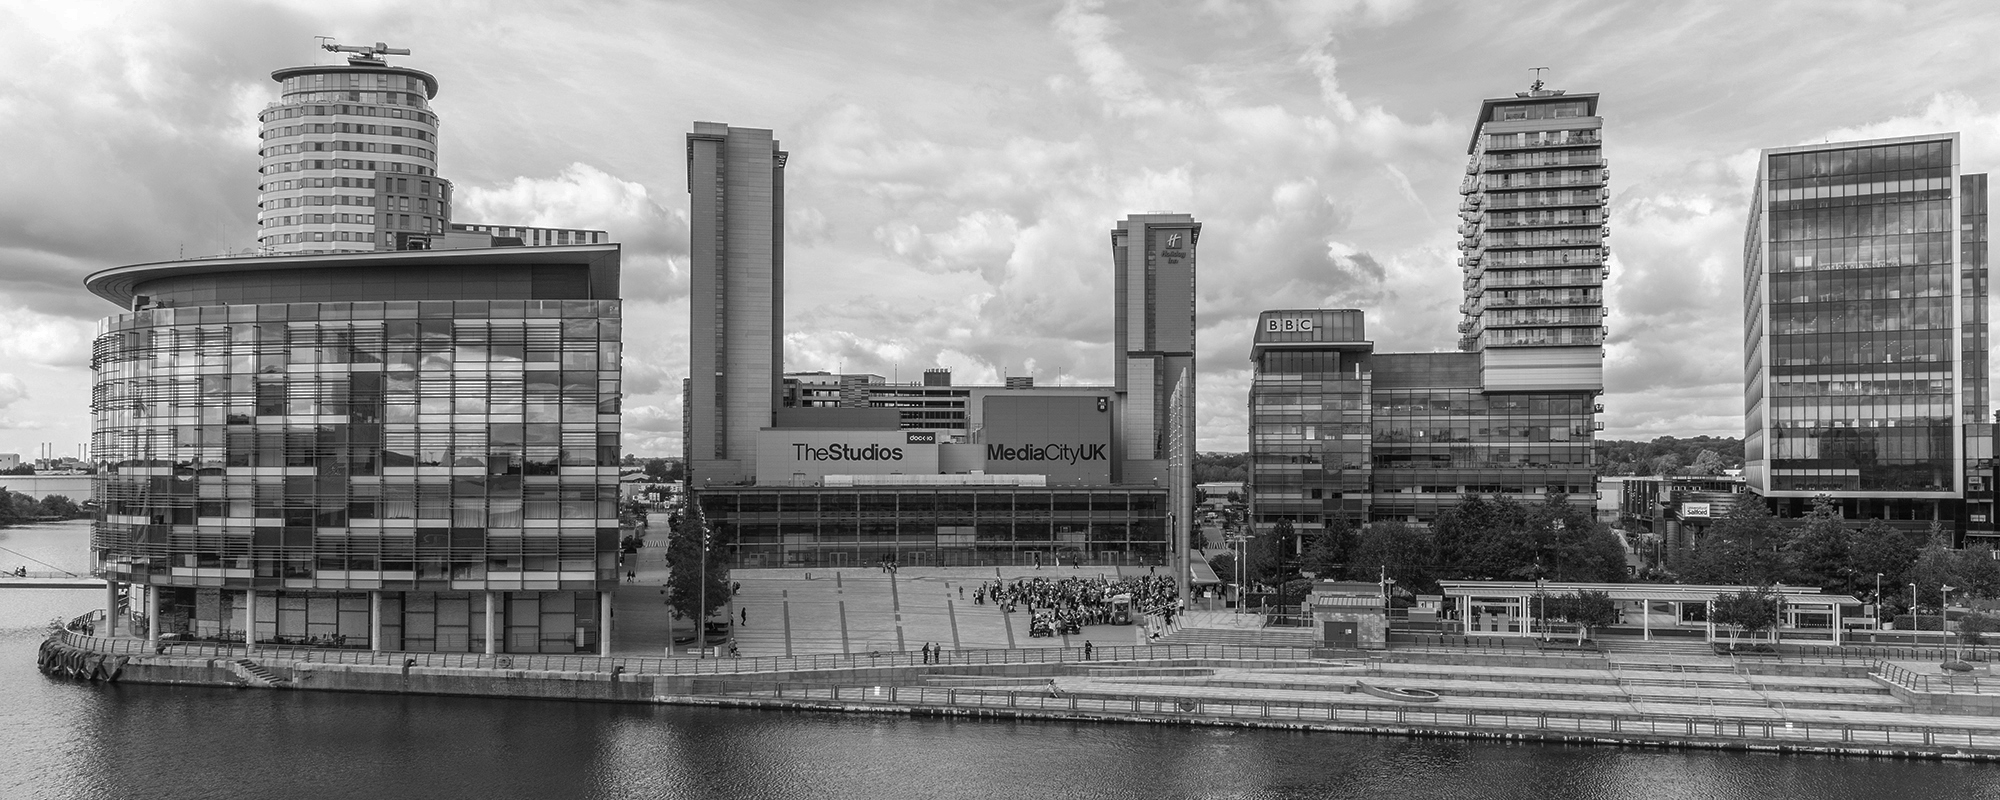 Placetest: MediaCityUK